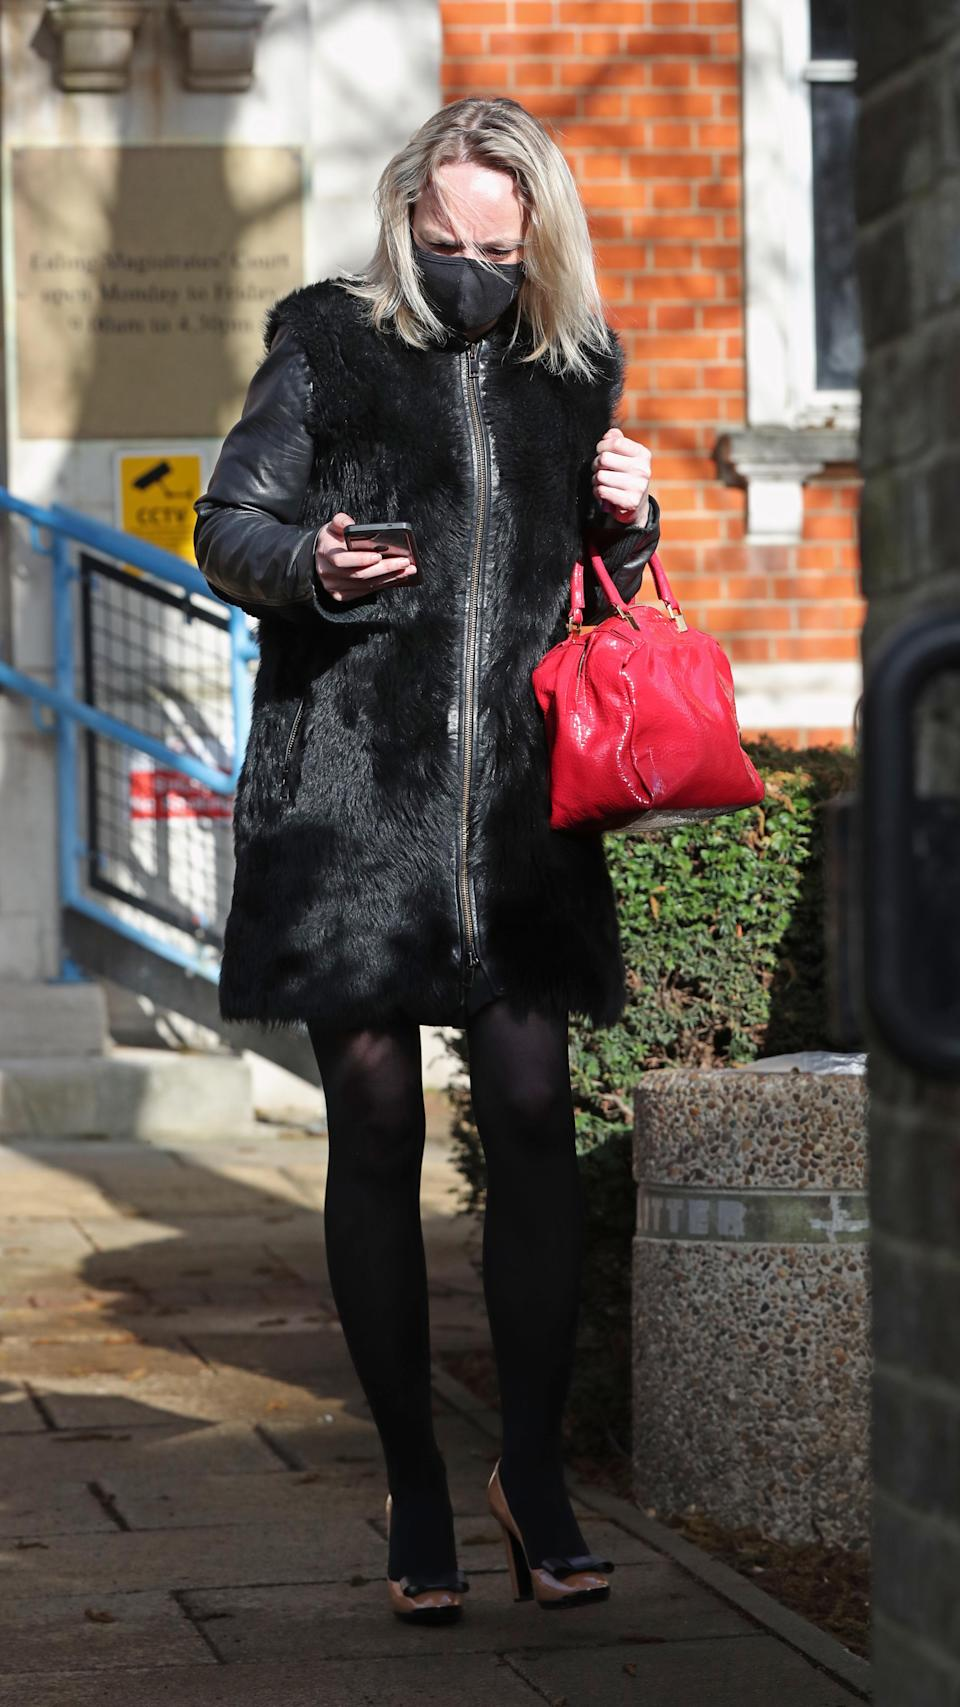 Rachel Street leaves Ealing Magistrates Court in London charged with being drunk in an aircraft during a Virgin Atlantic flight from Barbados to Heathrow in January. Picture date: Wednesday March 17, 2021.